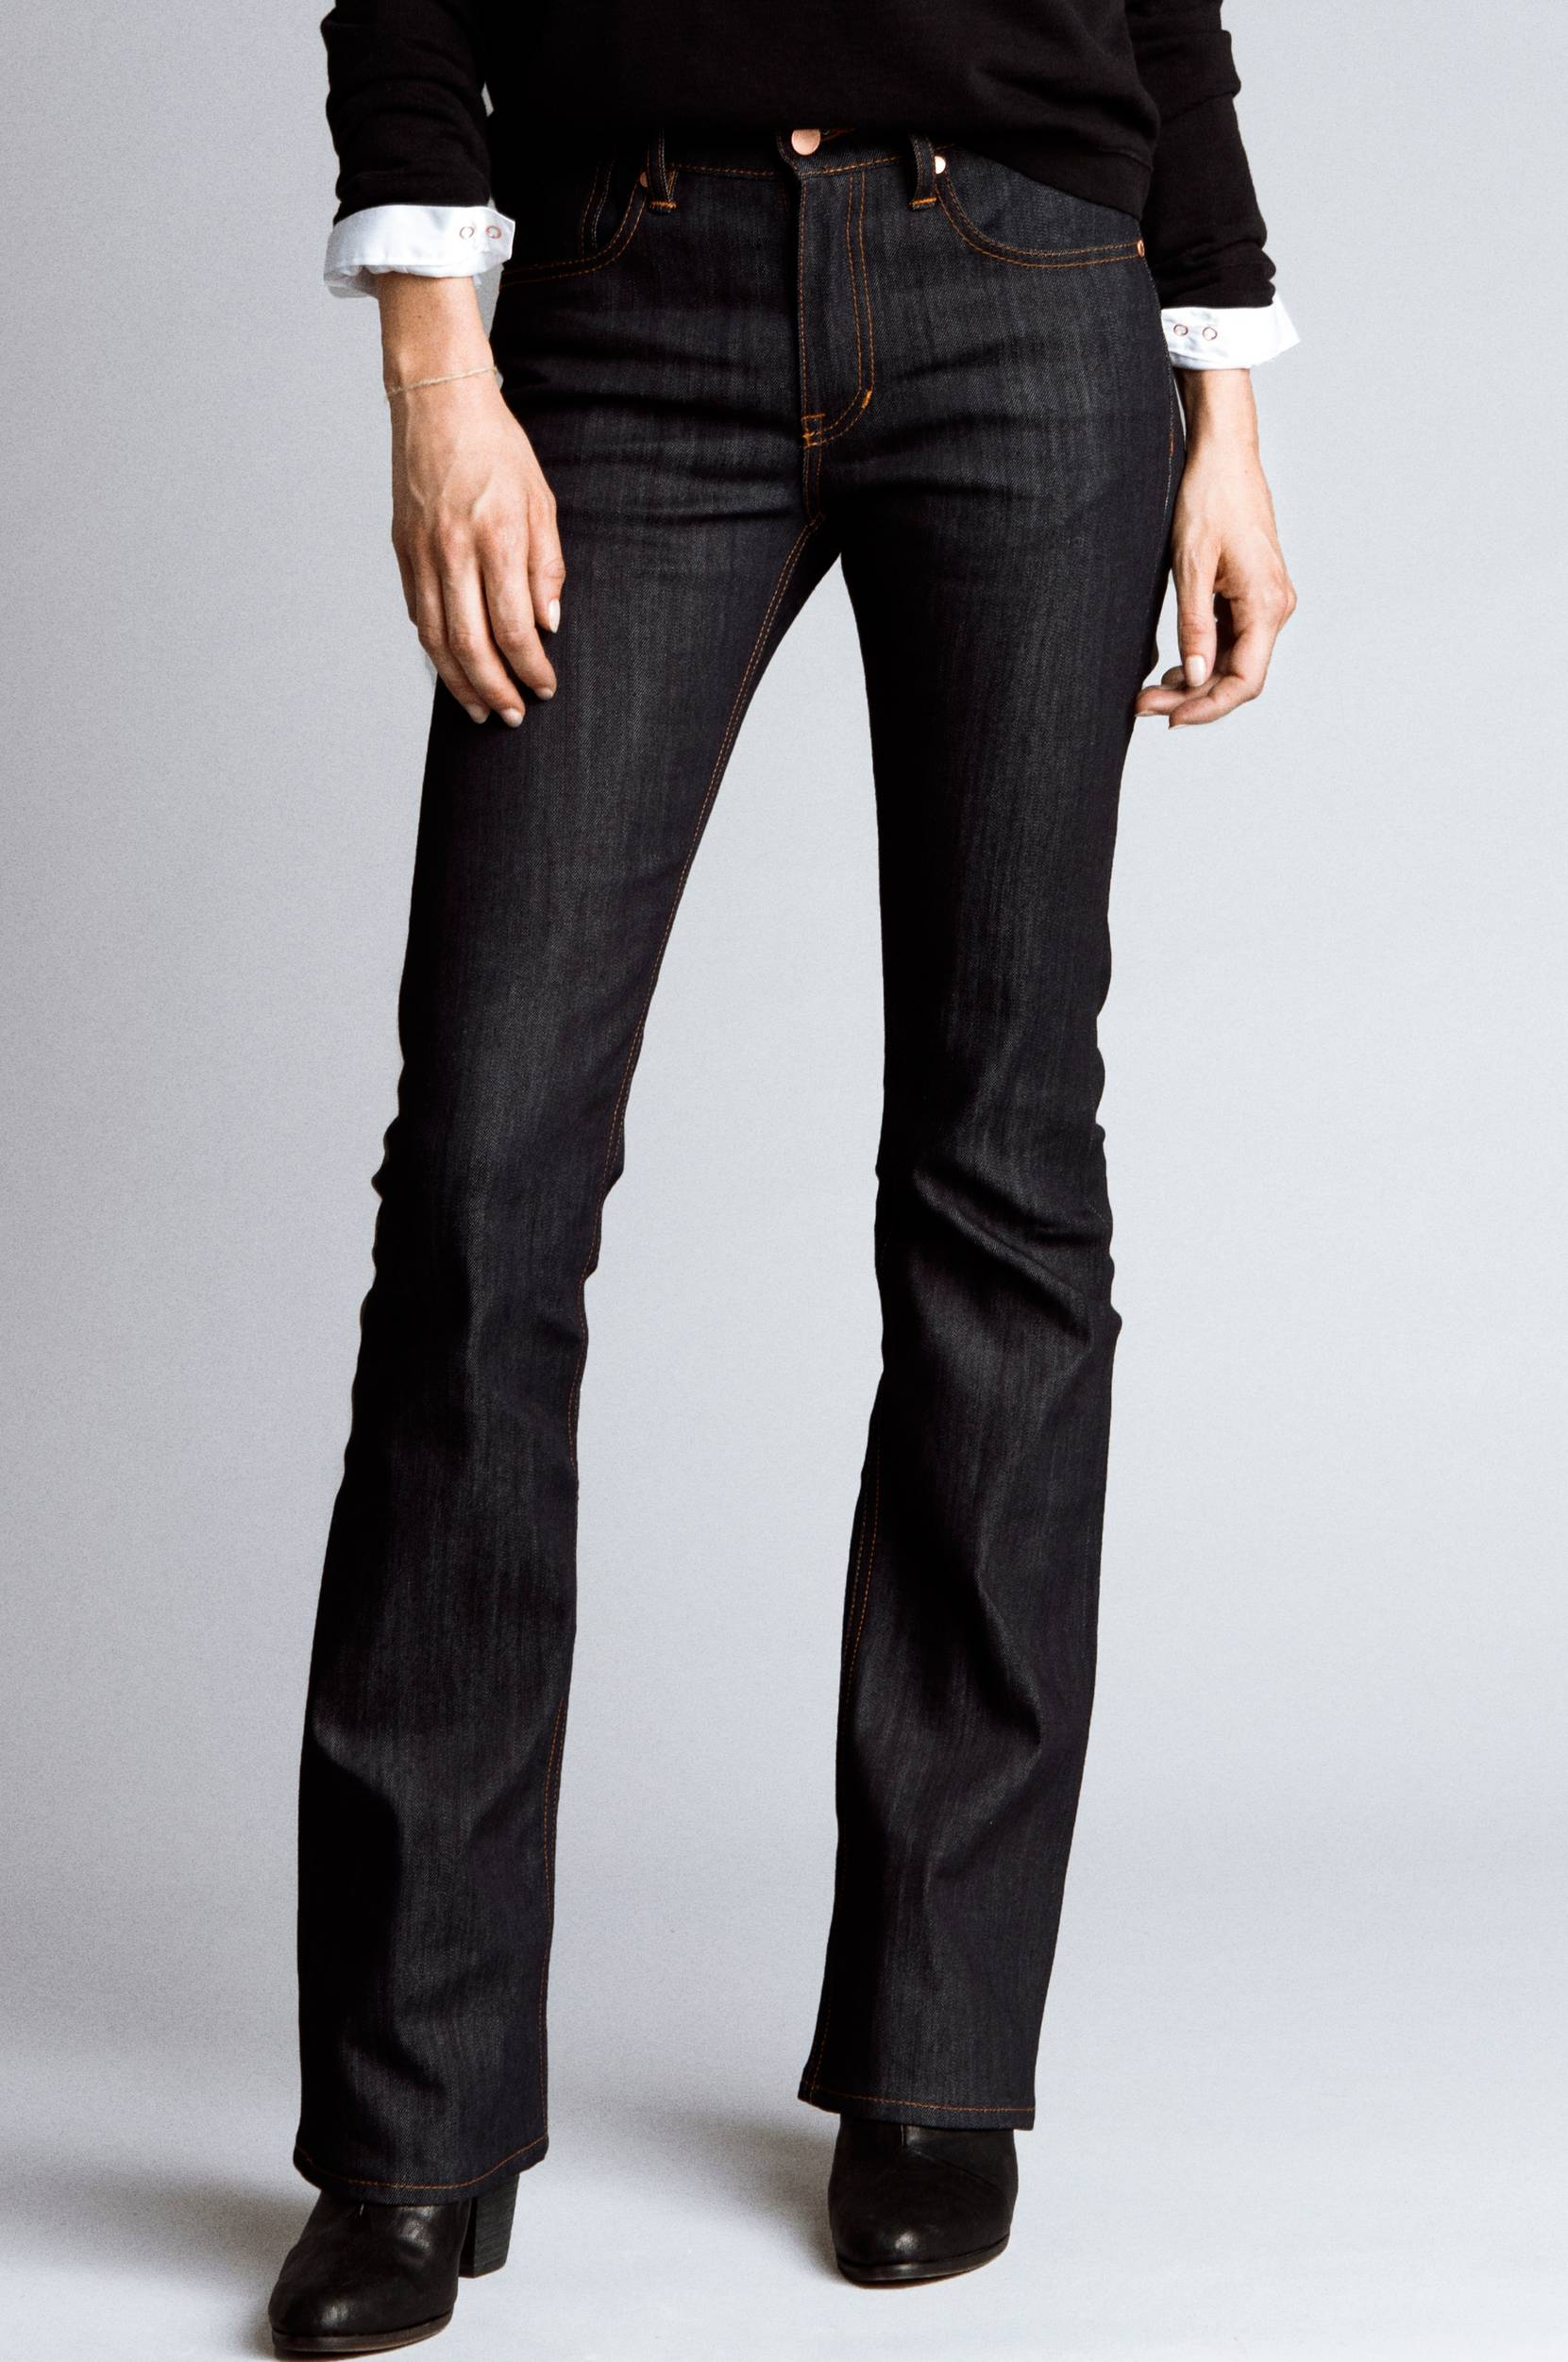 The Flare Jean